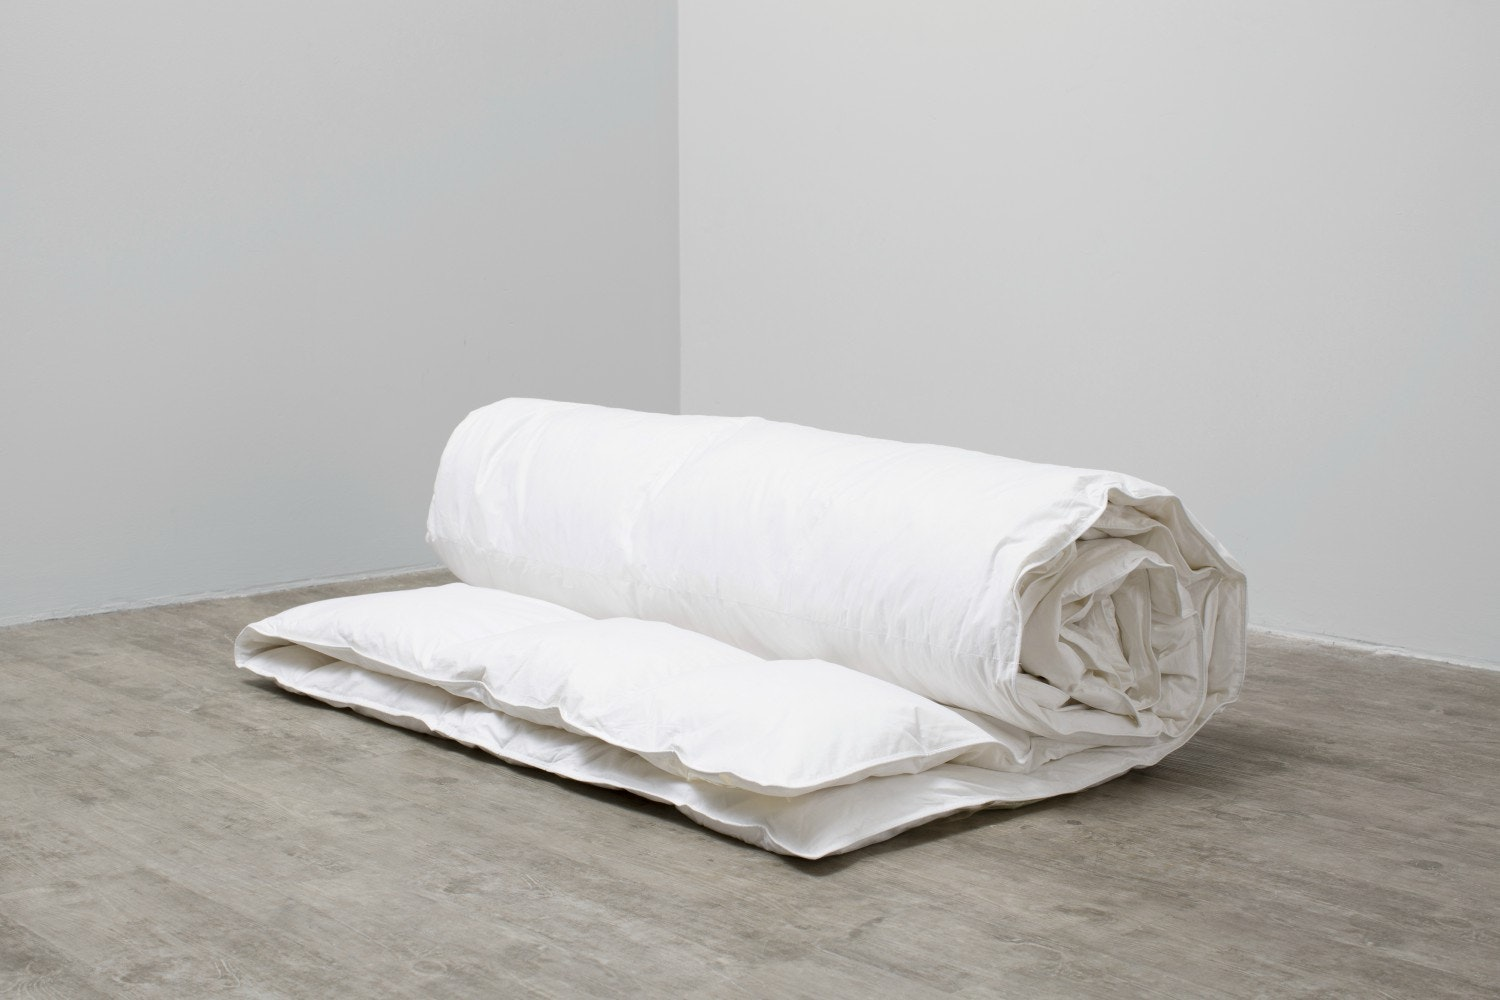 The Linen Room White Goose Down Duvet 13.5 Tog | Super King